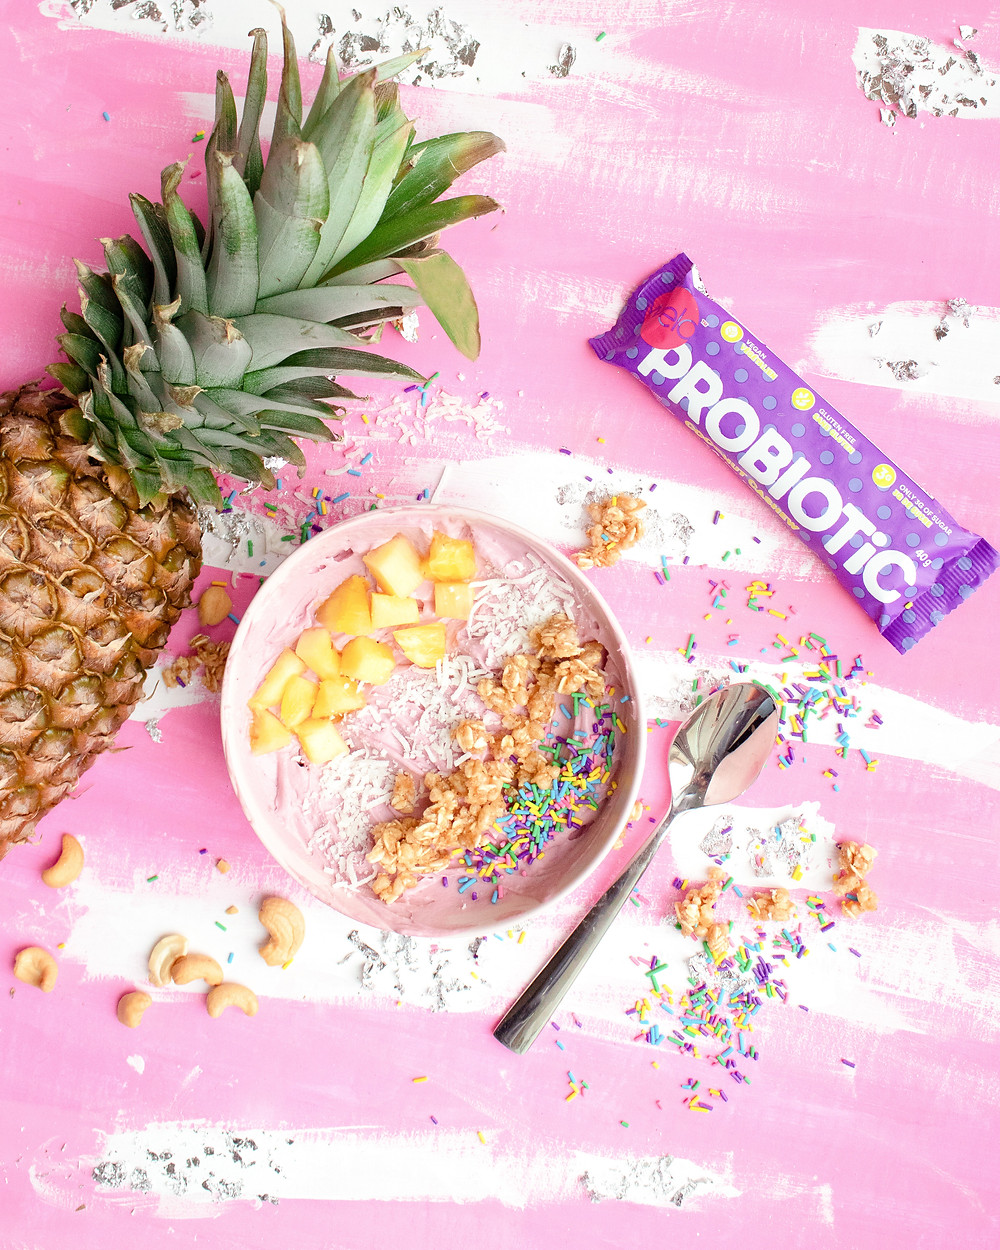 a breakfast bowl, a pineapple, a probiotic bar and a spoon